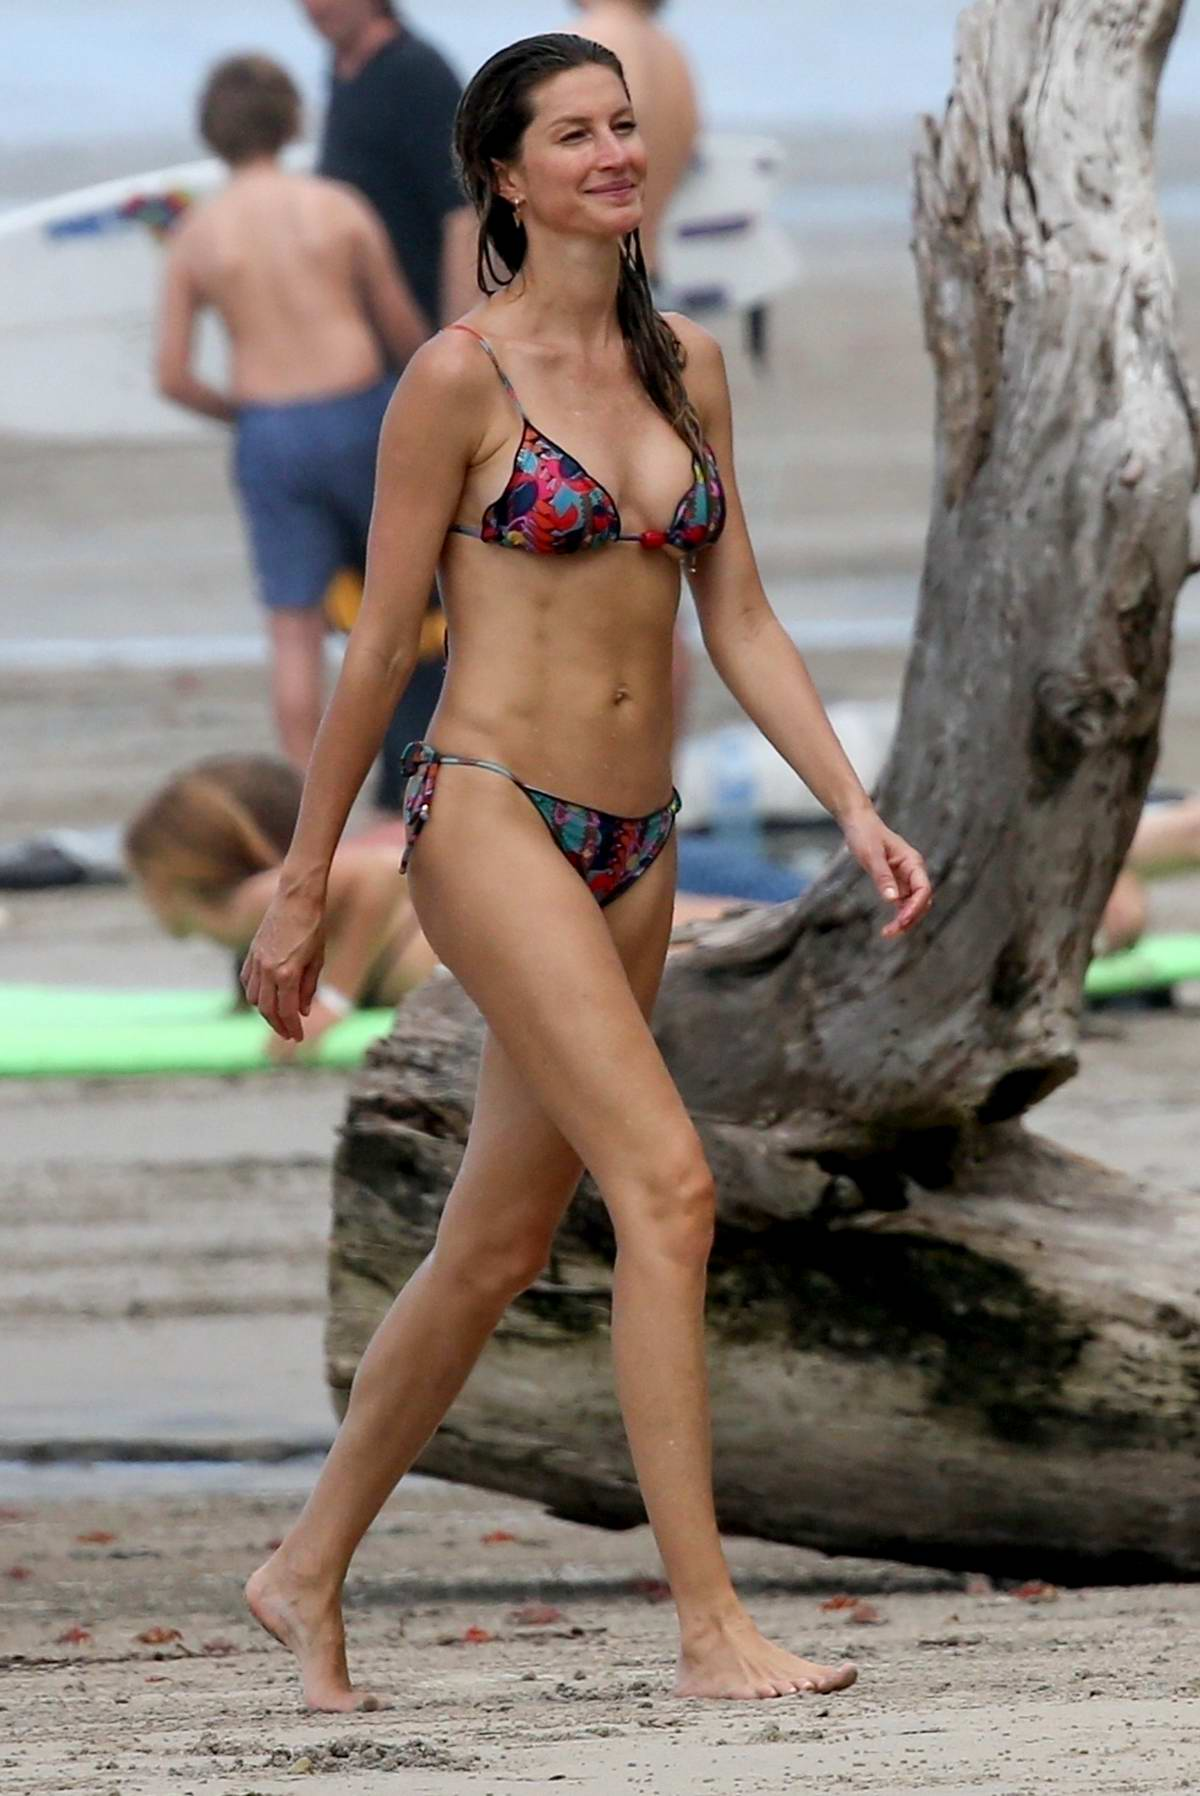 Gisele Bundchen looks incredible in a colorful bikini while enjoying the beach with Tom Brady in Costa Rica